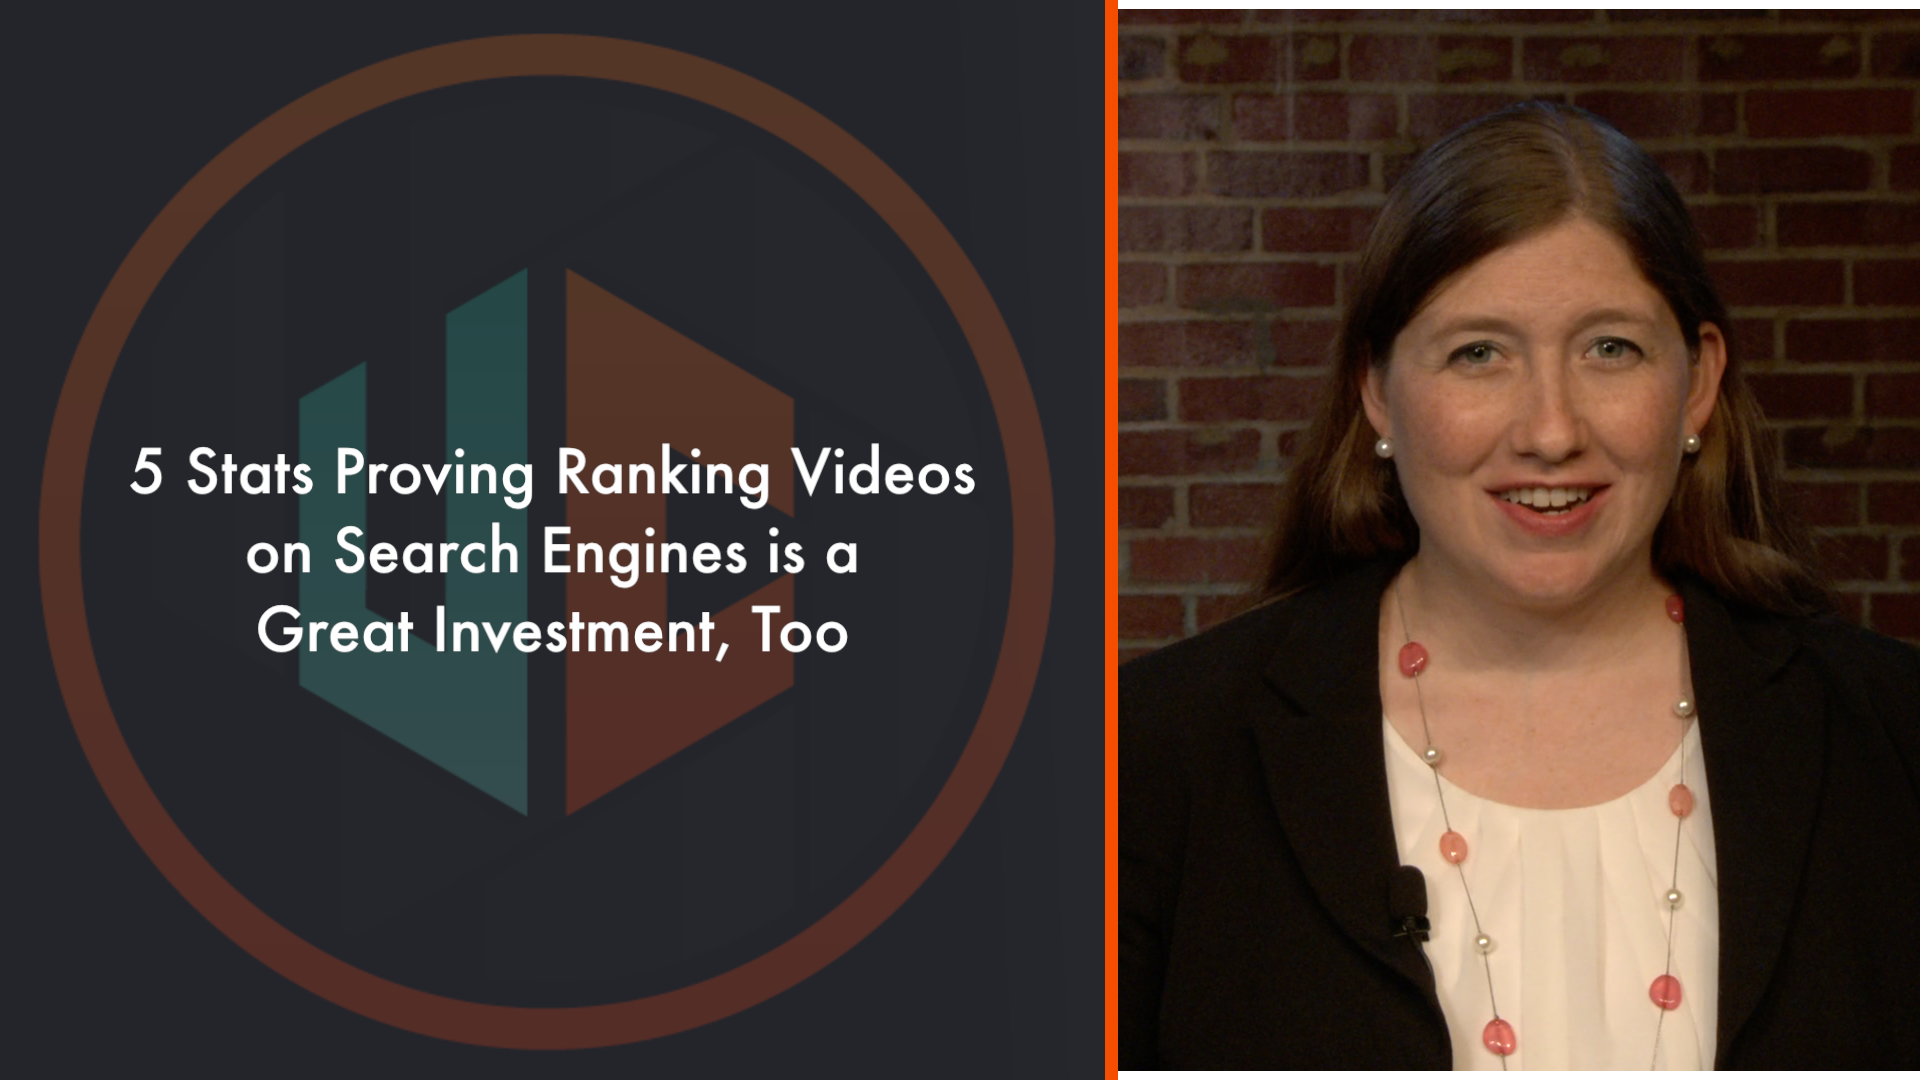 5 Stats Ranking Videos Search Engines Great Investment